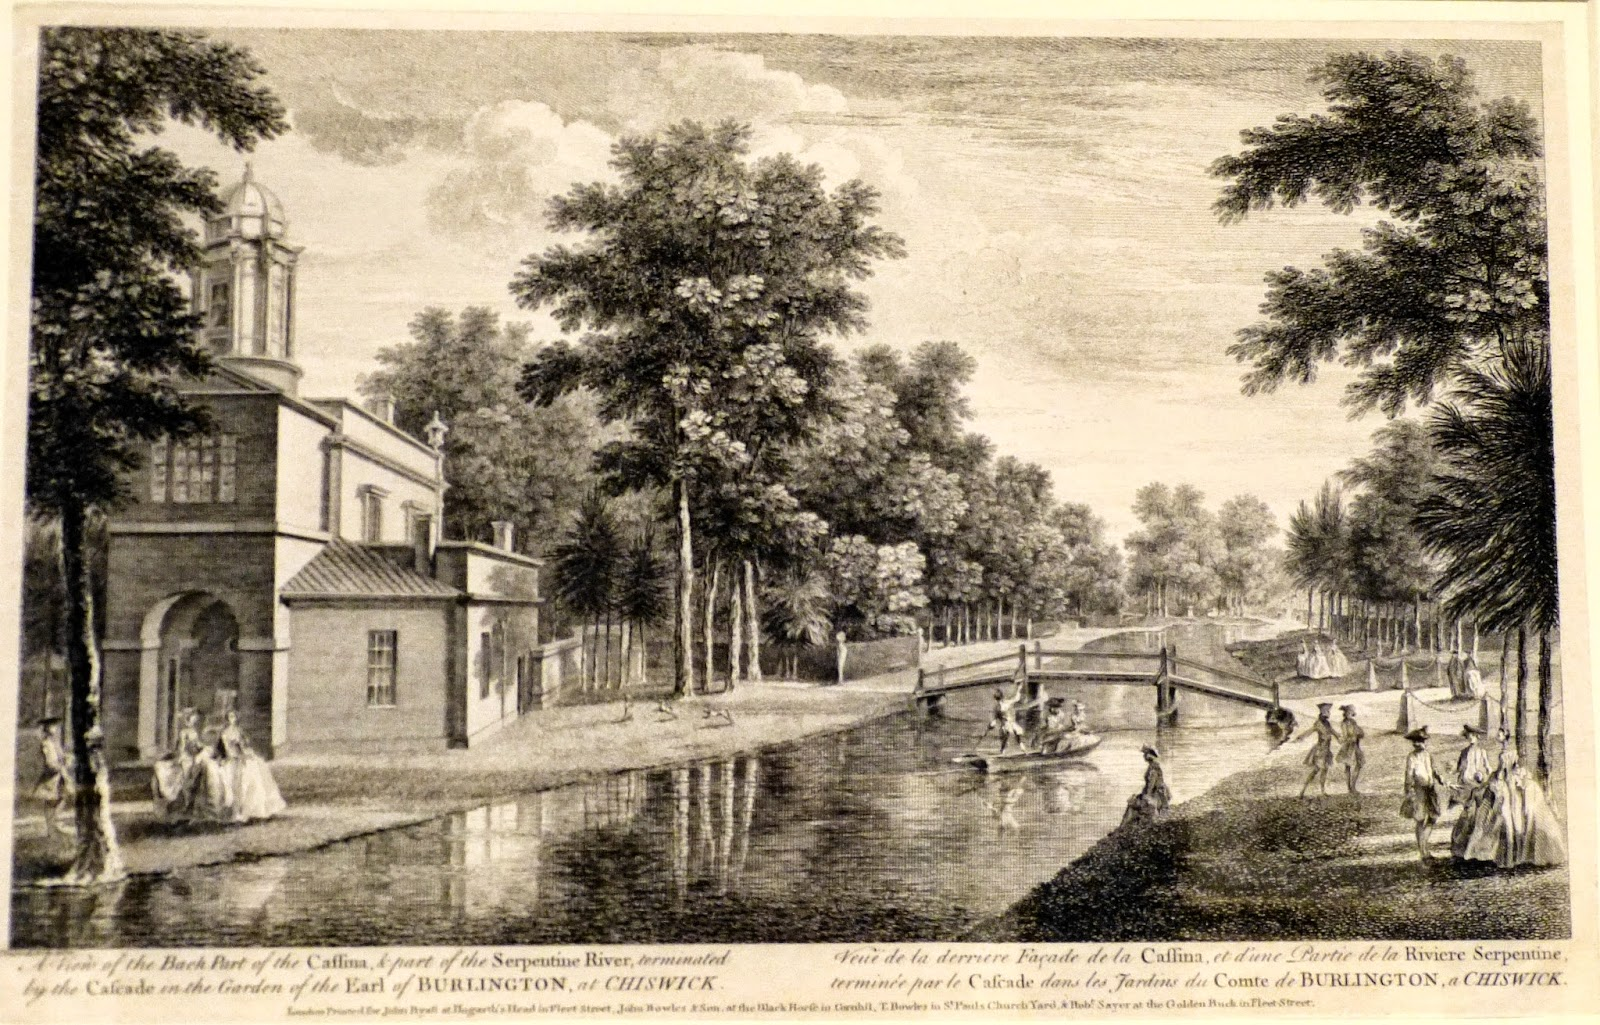 A view of the back part of the Cassina & part of the Serpentine   river, terminated by the cascade - Lord Burlington's gardens   at Chiswick after John Donowell (c1753)